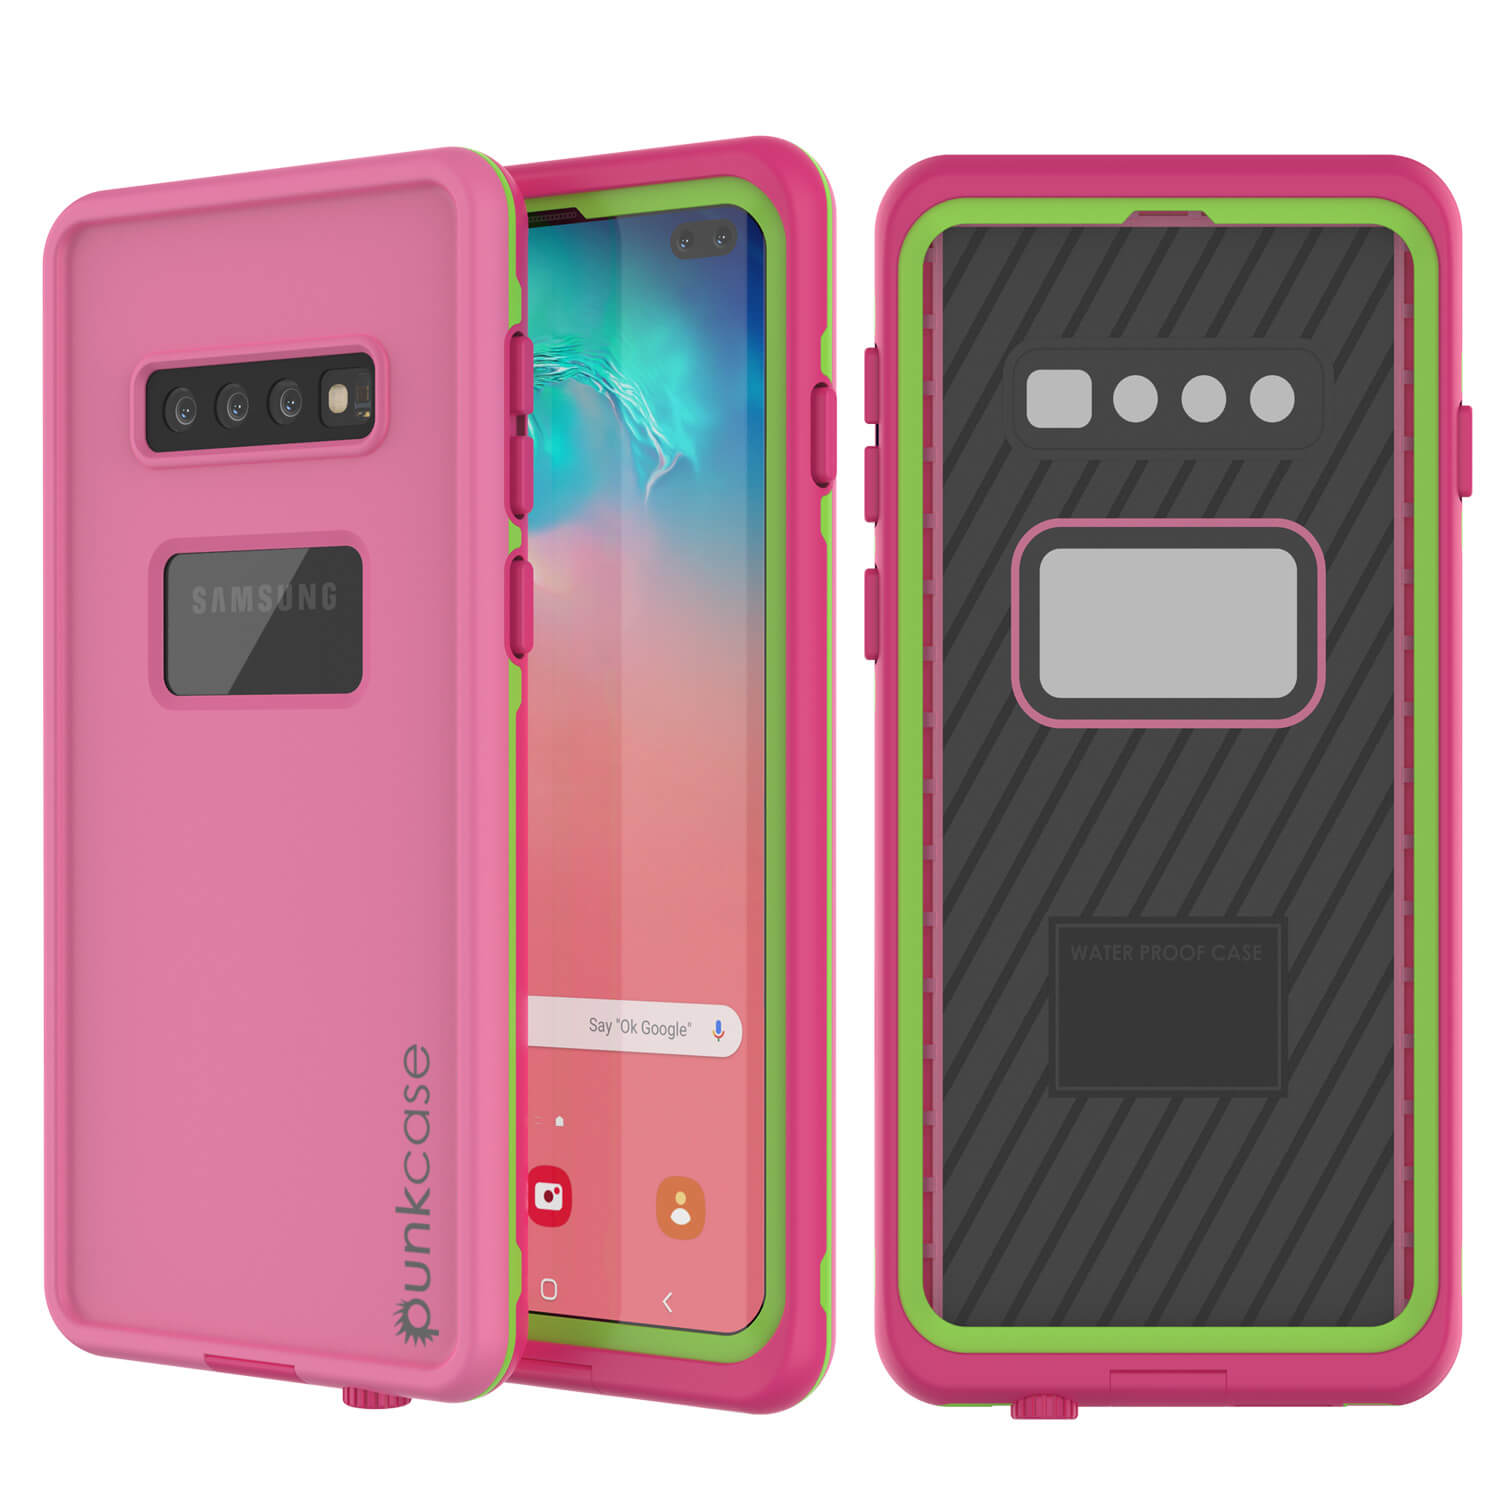 Punkcase S10+ Plus Waterproof Case [Aqua Series] Armor Cover [Pink]